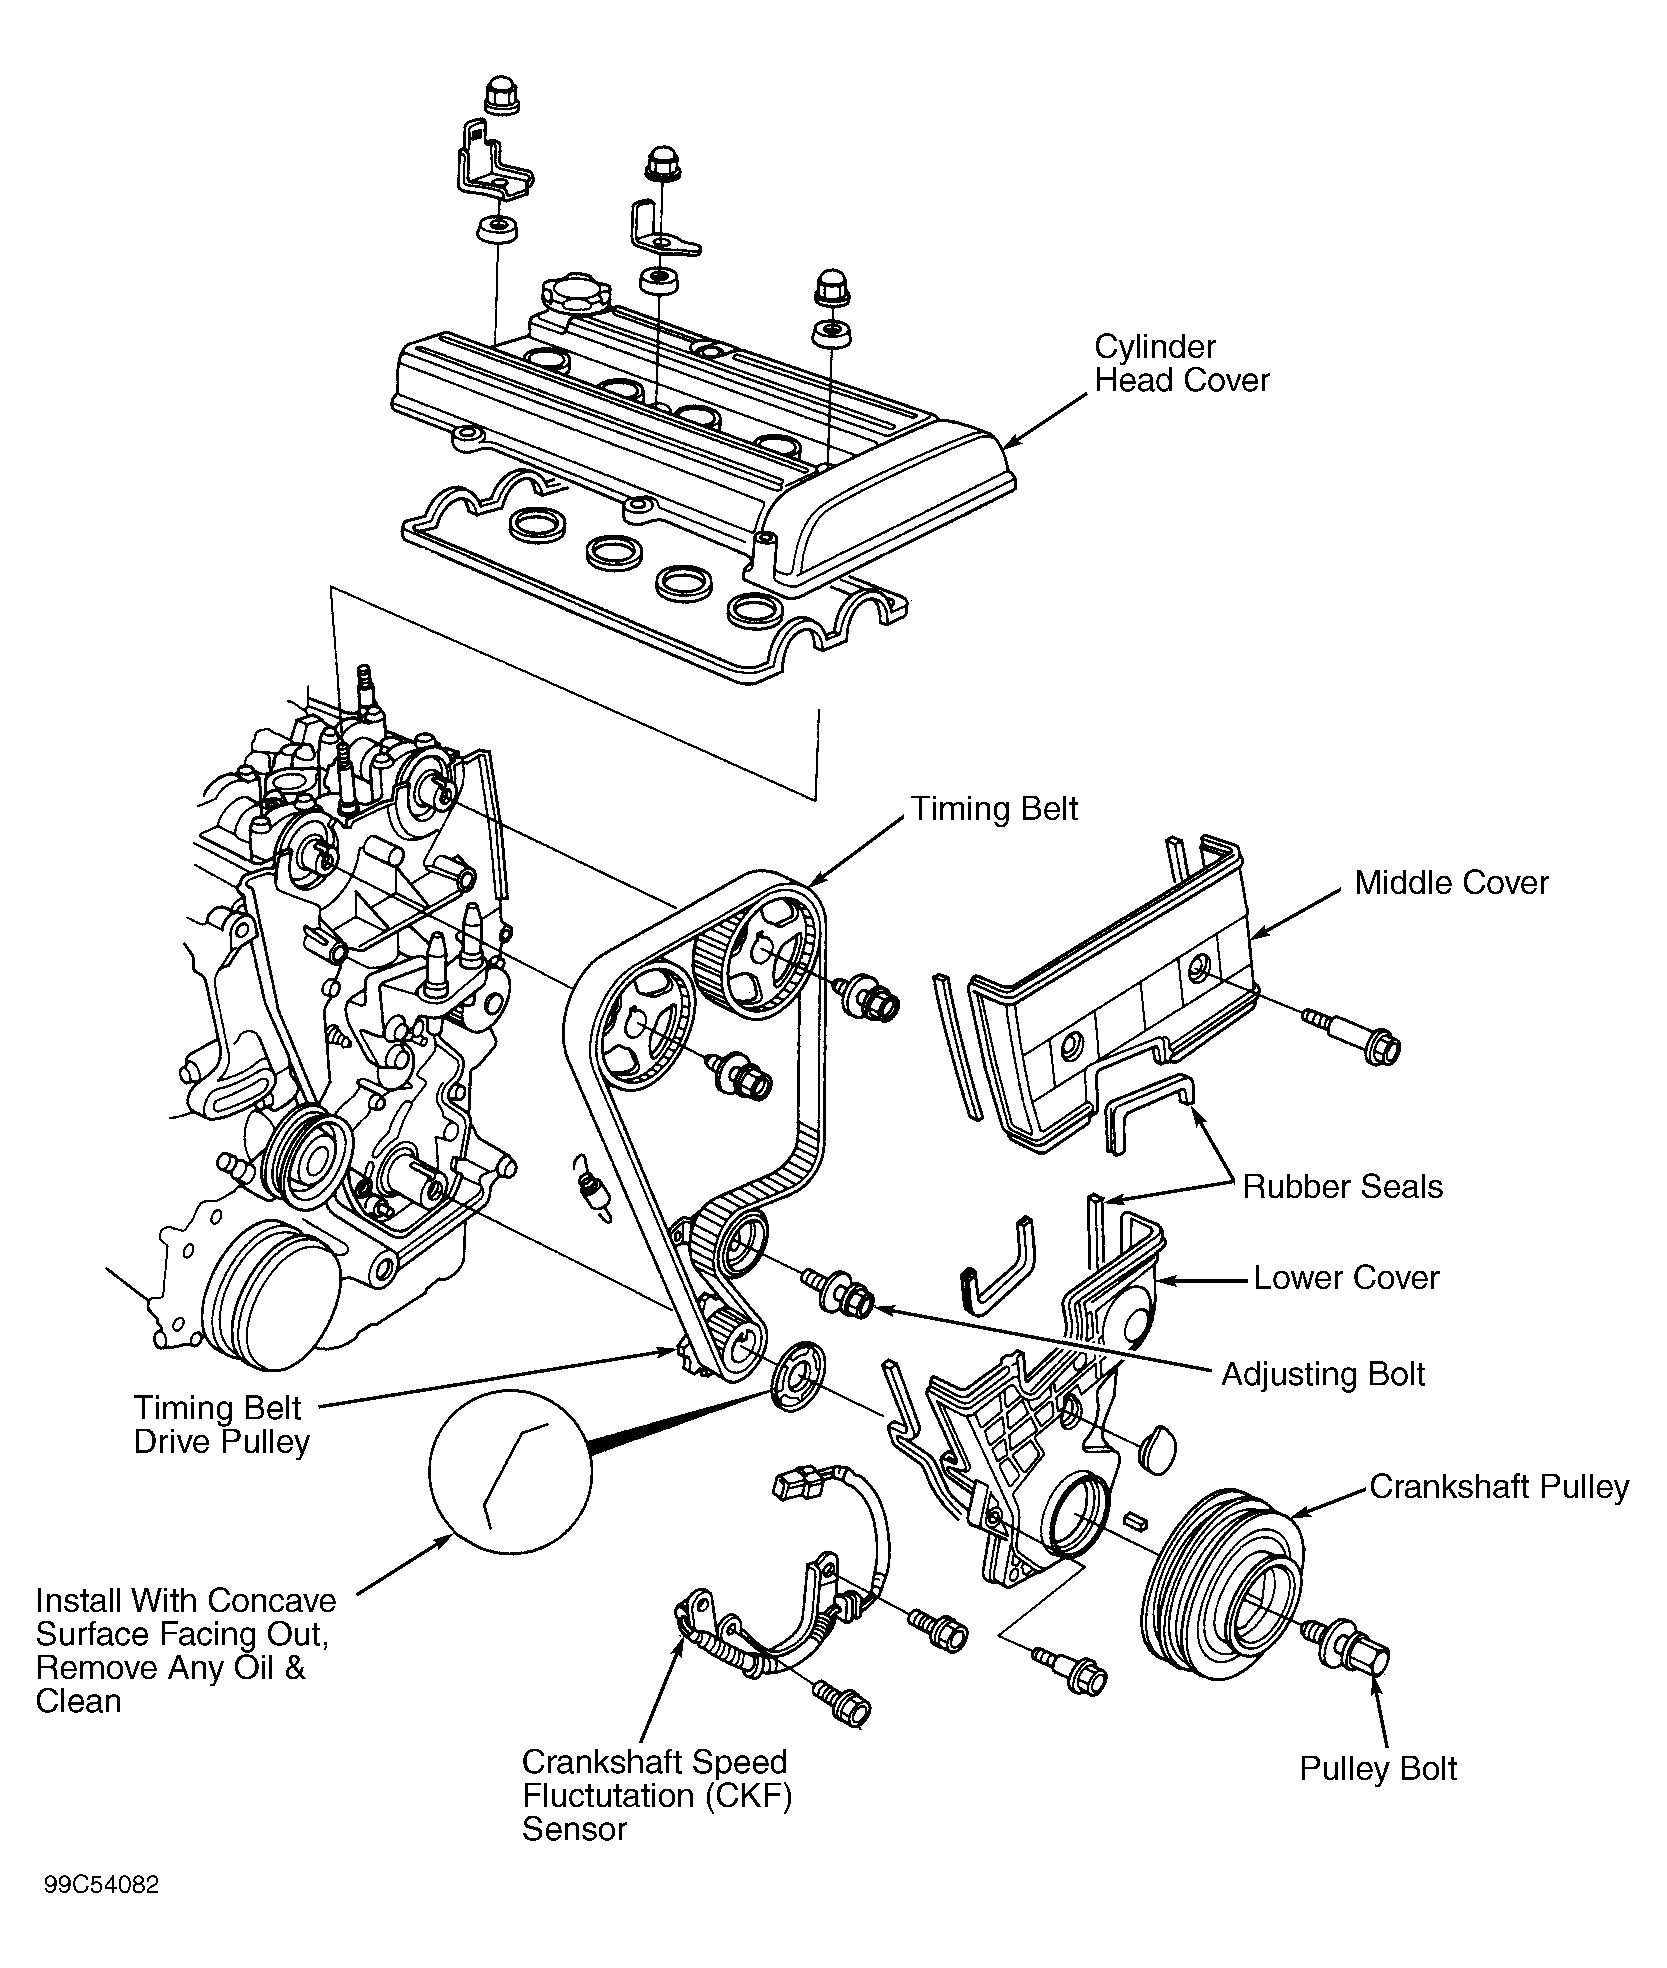 Honda Crv Engine Diagram Wiring Diagram 2003 Ford Excursion Engine Diagram 2003 Honda Crv Engine Diagram 4